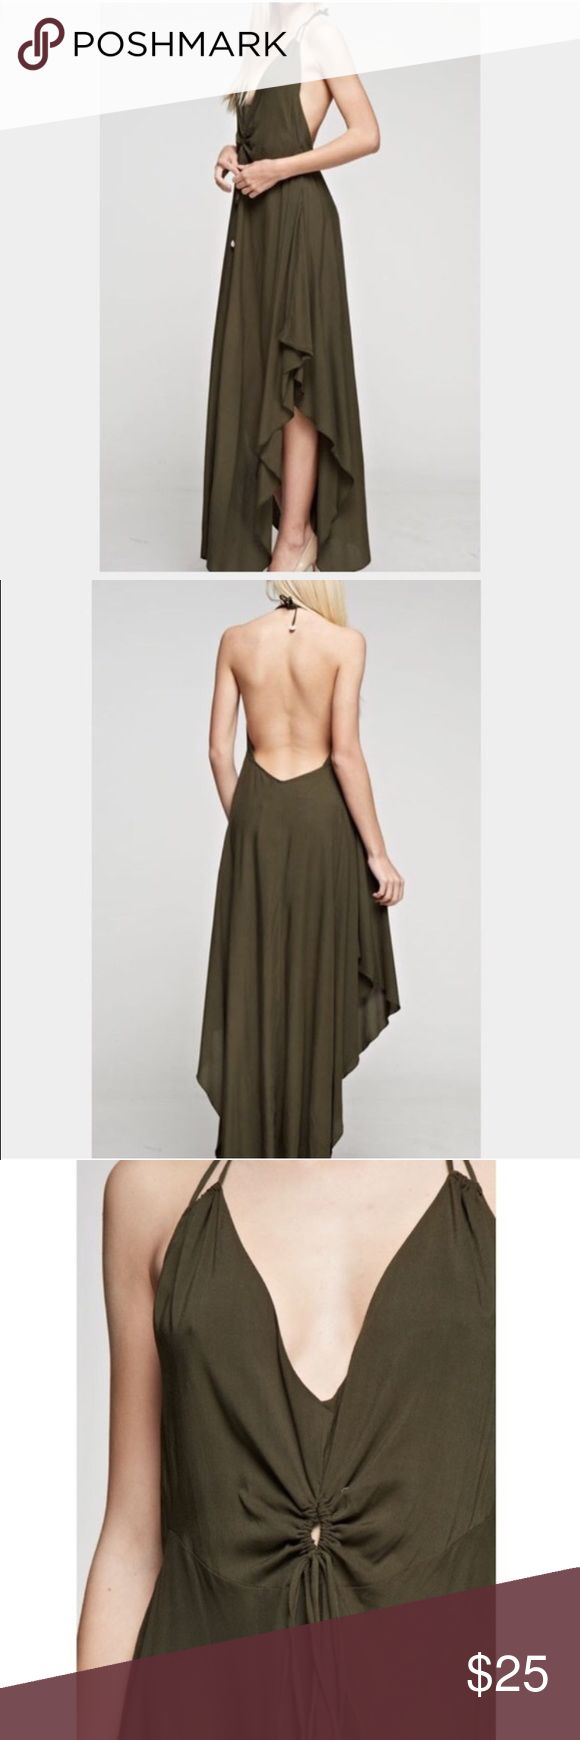 New Women's Olive Green Maxi Long Dress New Women's Gorgeous Olive Green Maxi Dress   Olive Green; One-piece dress Ruffled Open Sides  Halter Top  Exposed Back Ties in the neck and on the waist   ✔️Ships 1-3 days (except weekends)  ✔️Discount with bundles  ✔️I do no cancel any orders once purchased  ✔️Any questions, feel free to ask :) Dresses Maxi